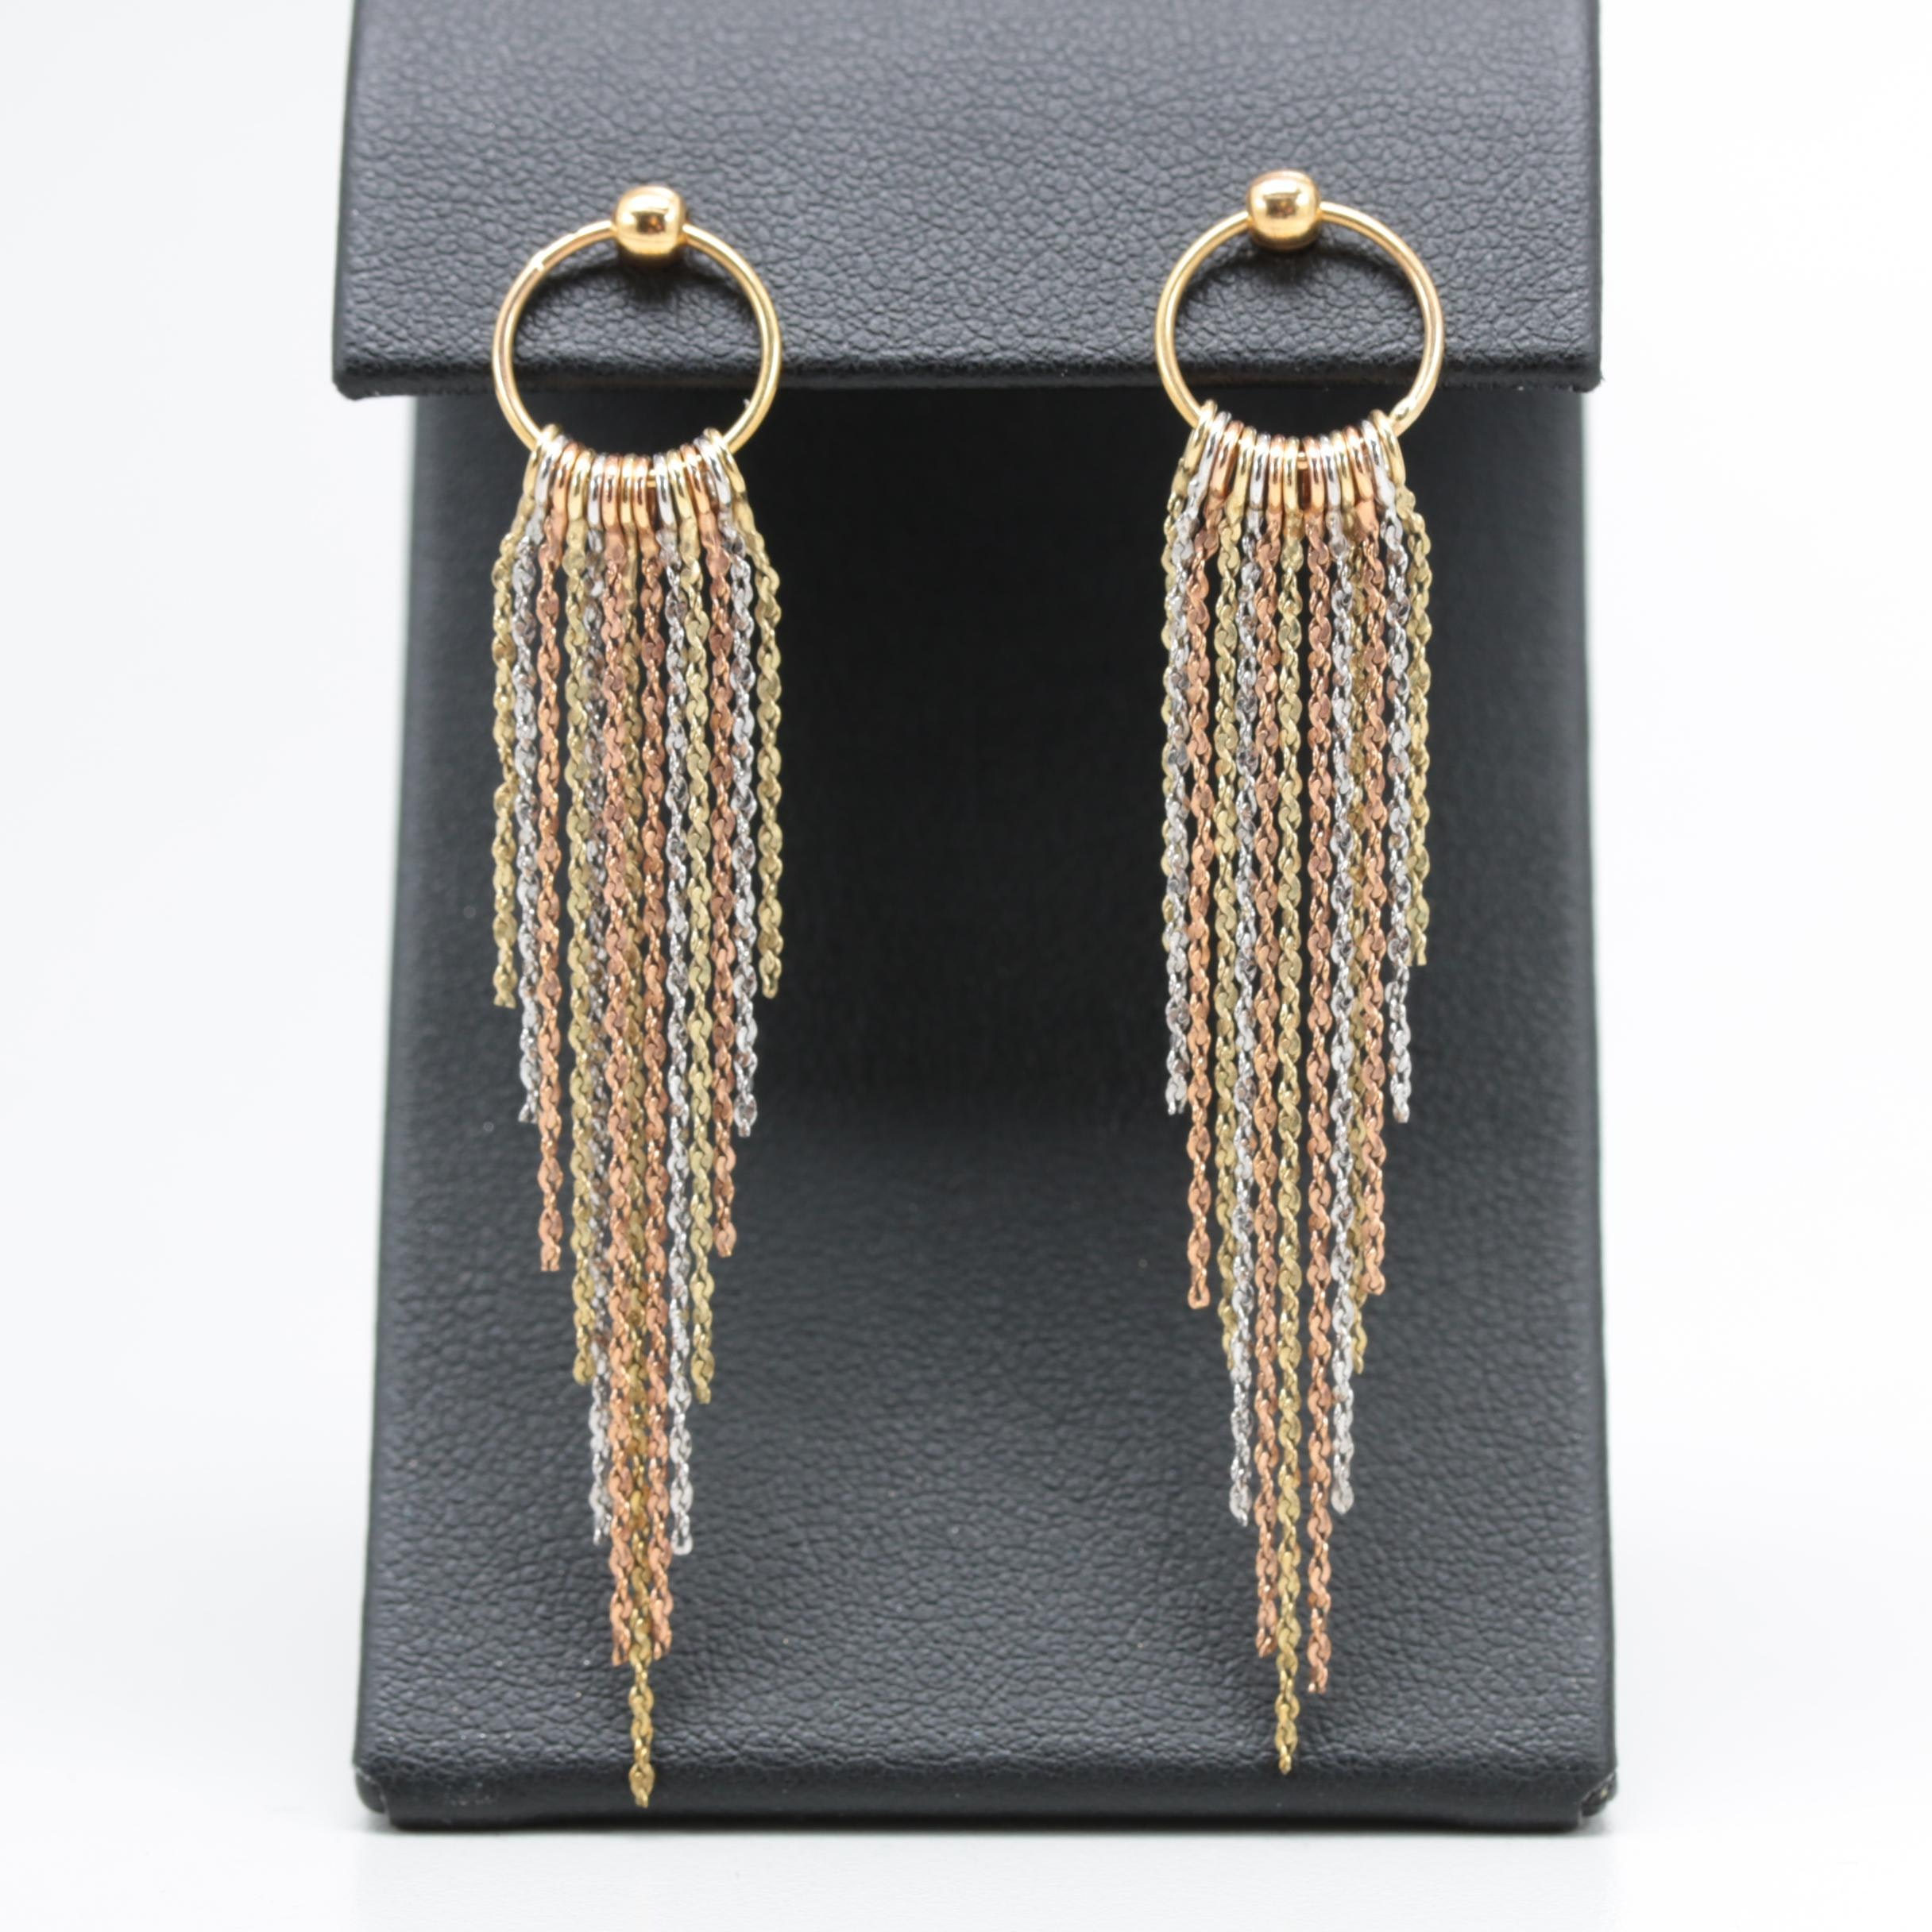 14K Yellow, Rose, and White Gold Dangle Earrings